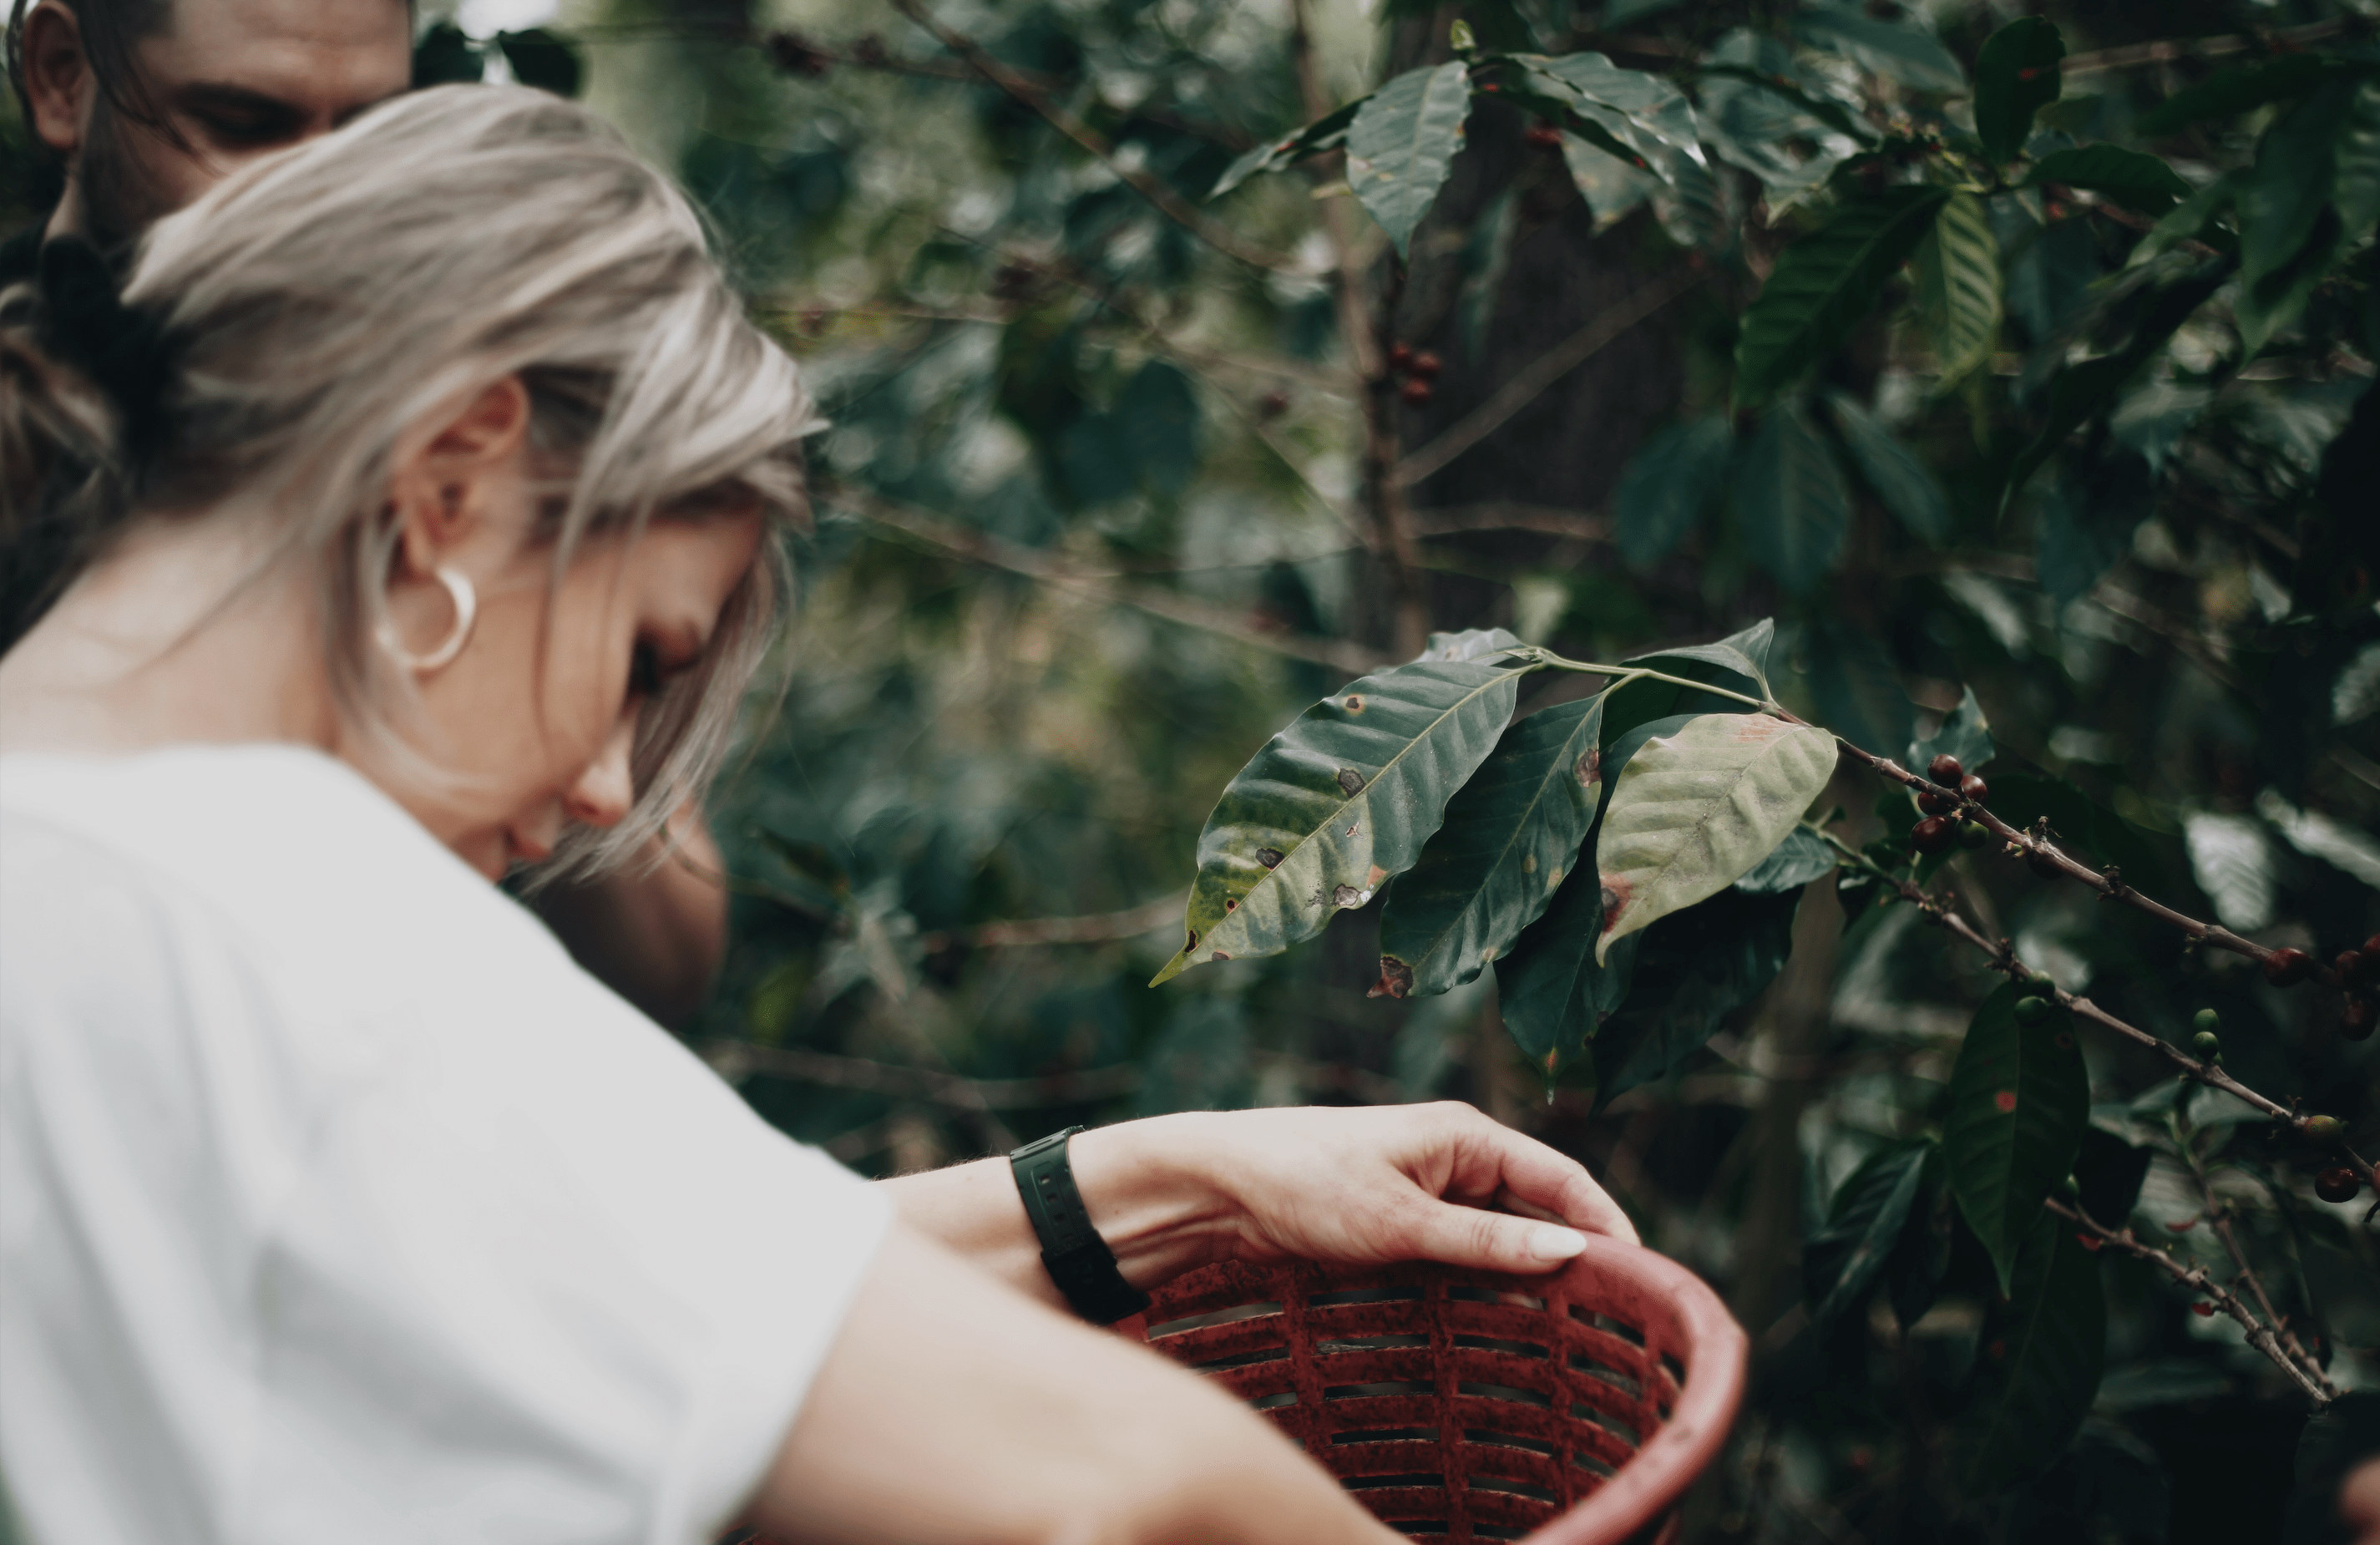 Anetta collecting coffee